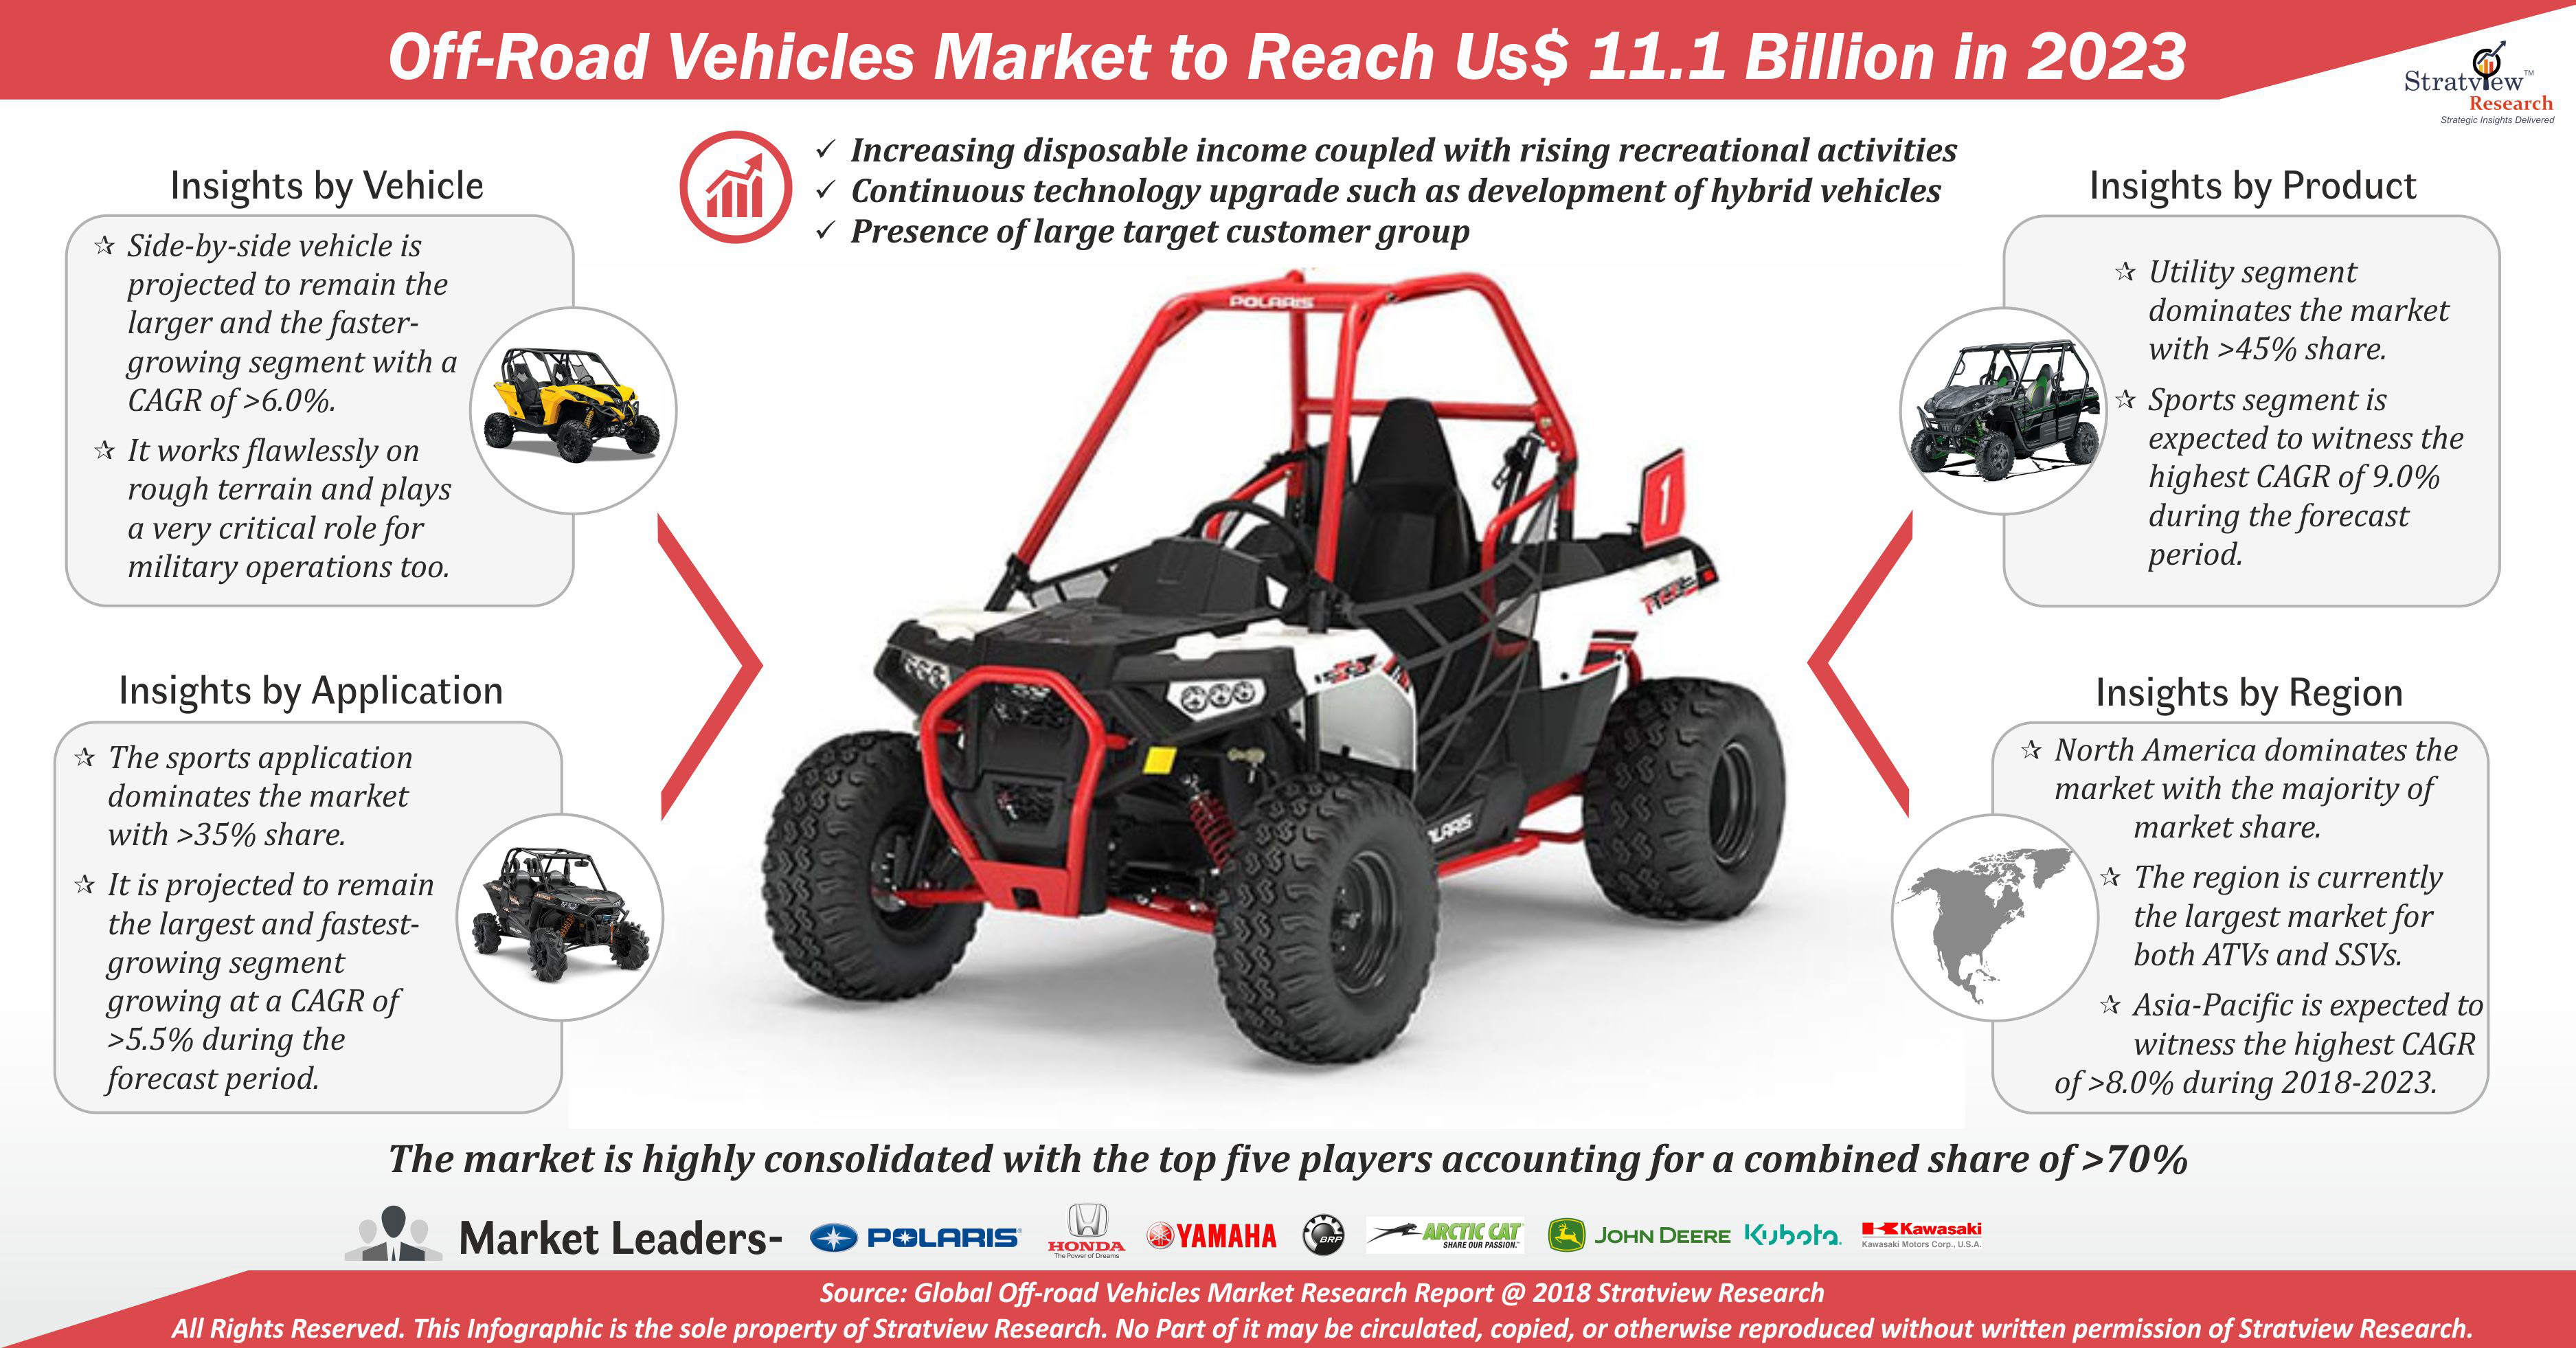 Off-Road Vehicles (ORVs) Market